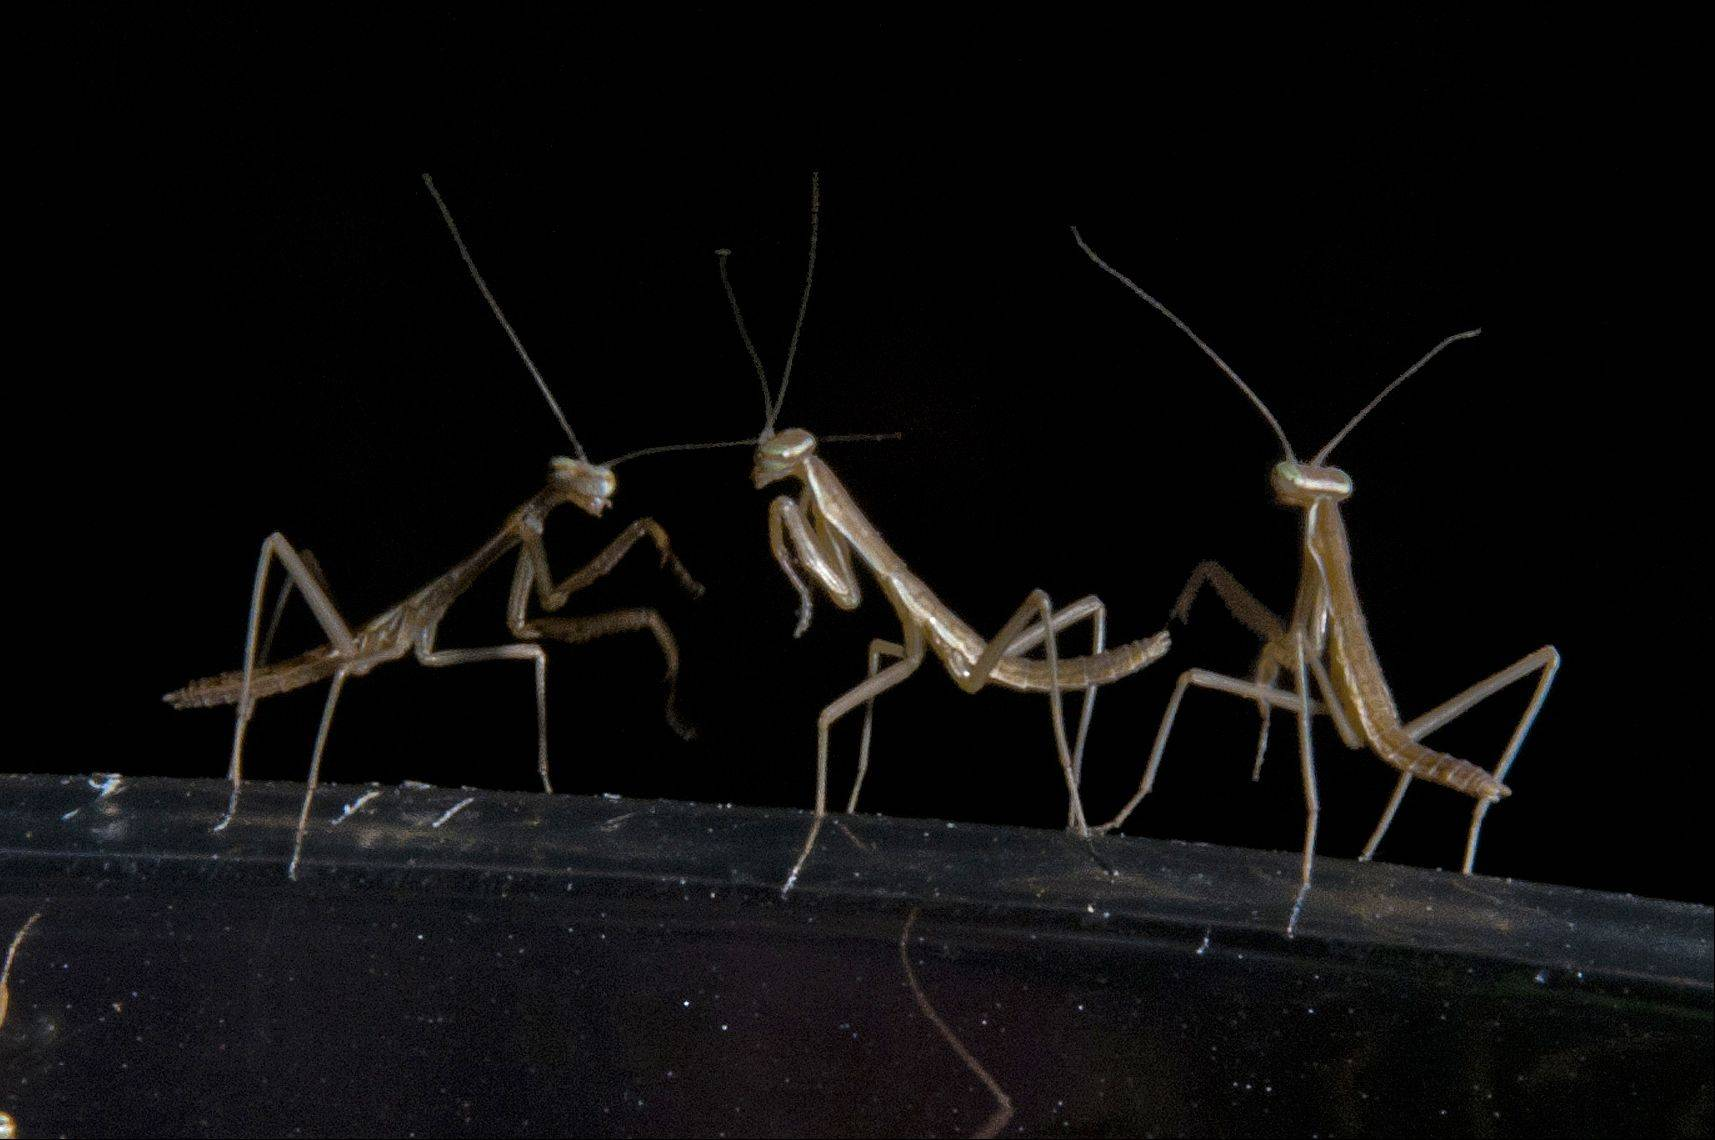 "I was inspired to submit this photo after a family bike ride at Morton Arboretum where we spotted a 12-foot tall praying mantis and other giant insects. I took this photo at night in my garden when freeing hundreds of mantises hatched from two cocoons. I simply call it ""Freeing the Mantises"""